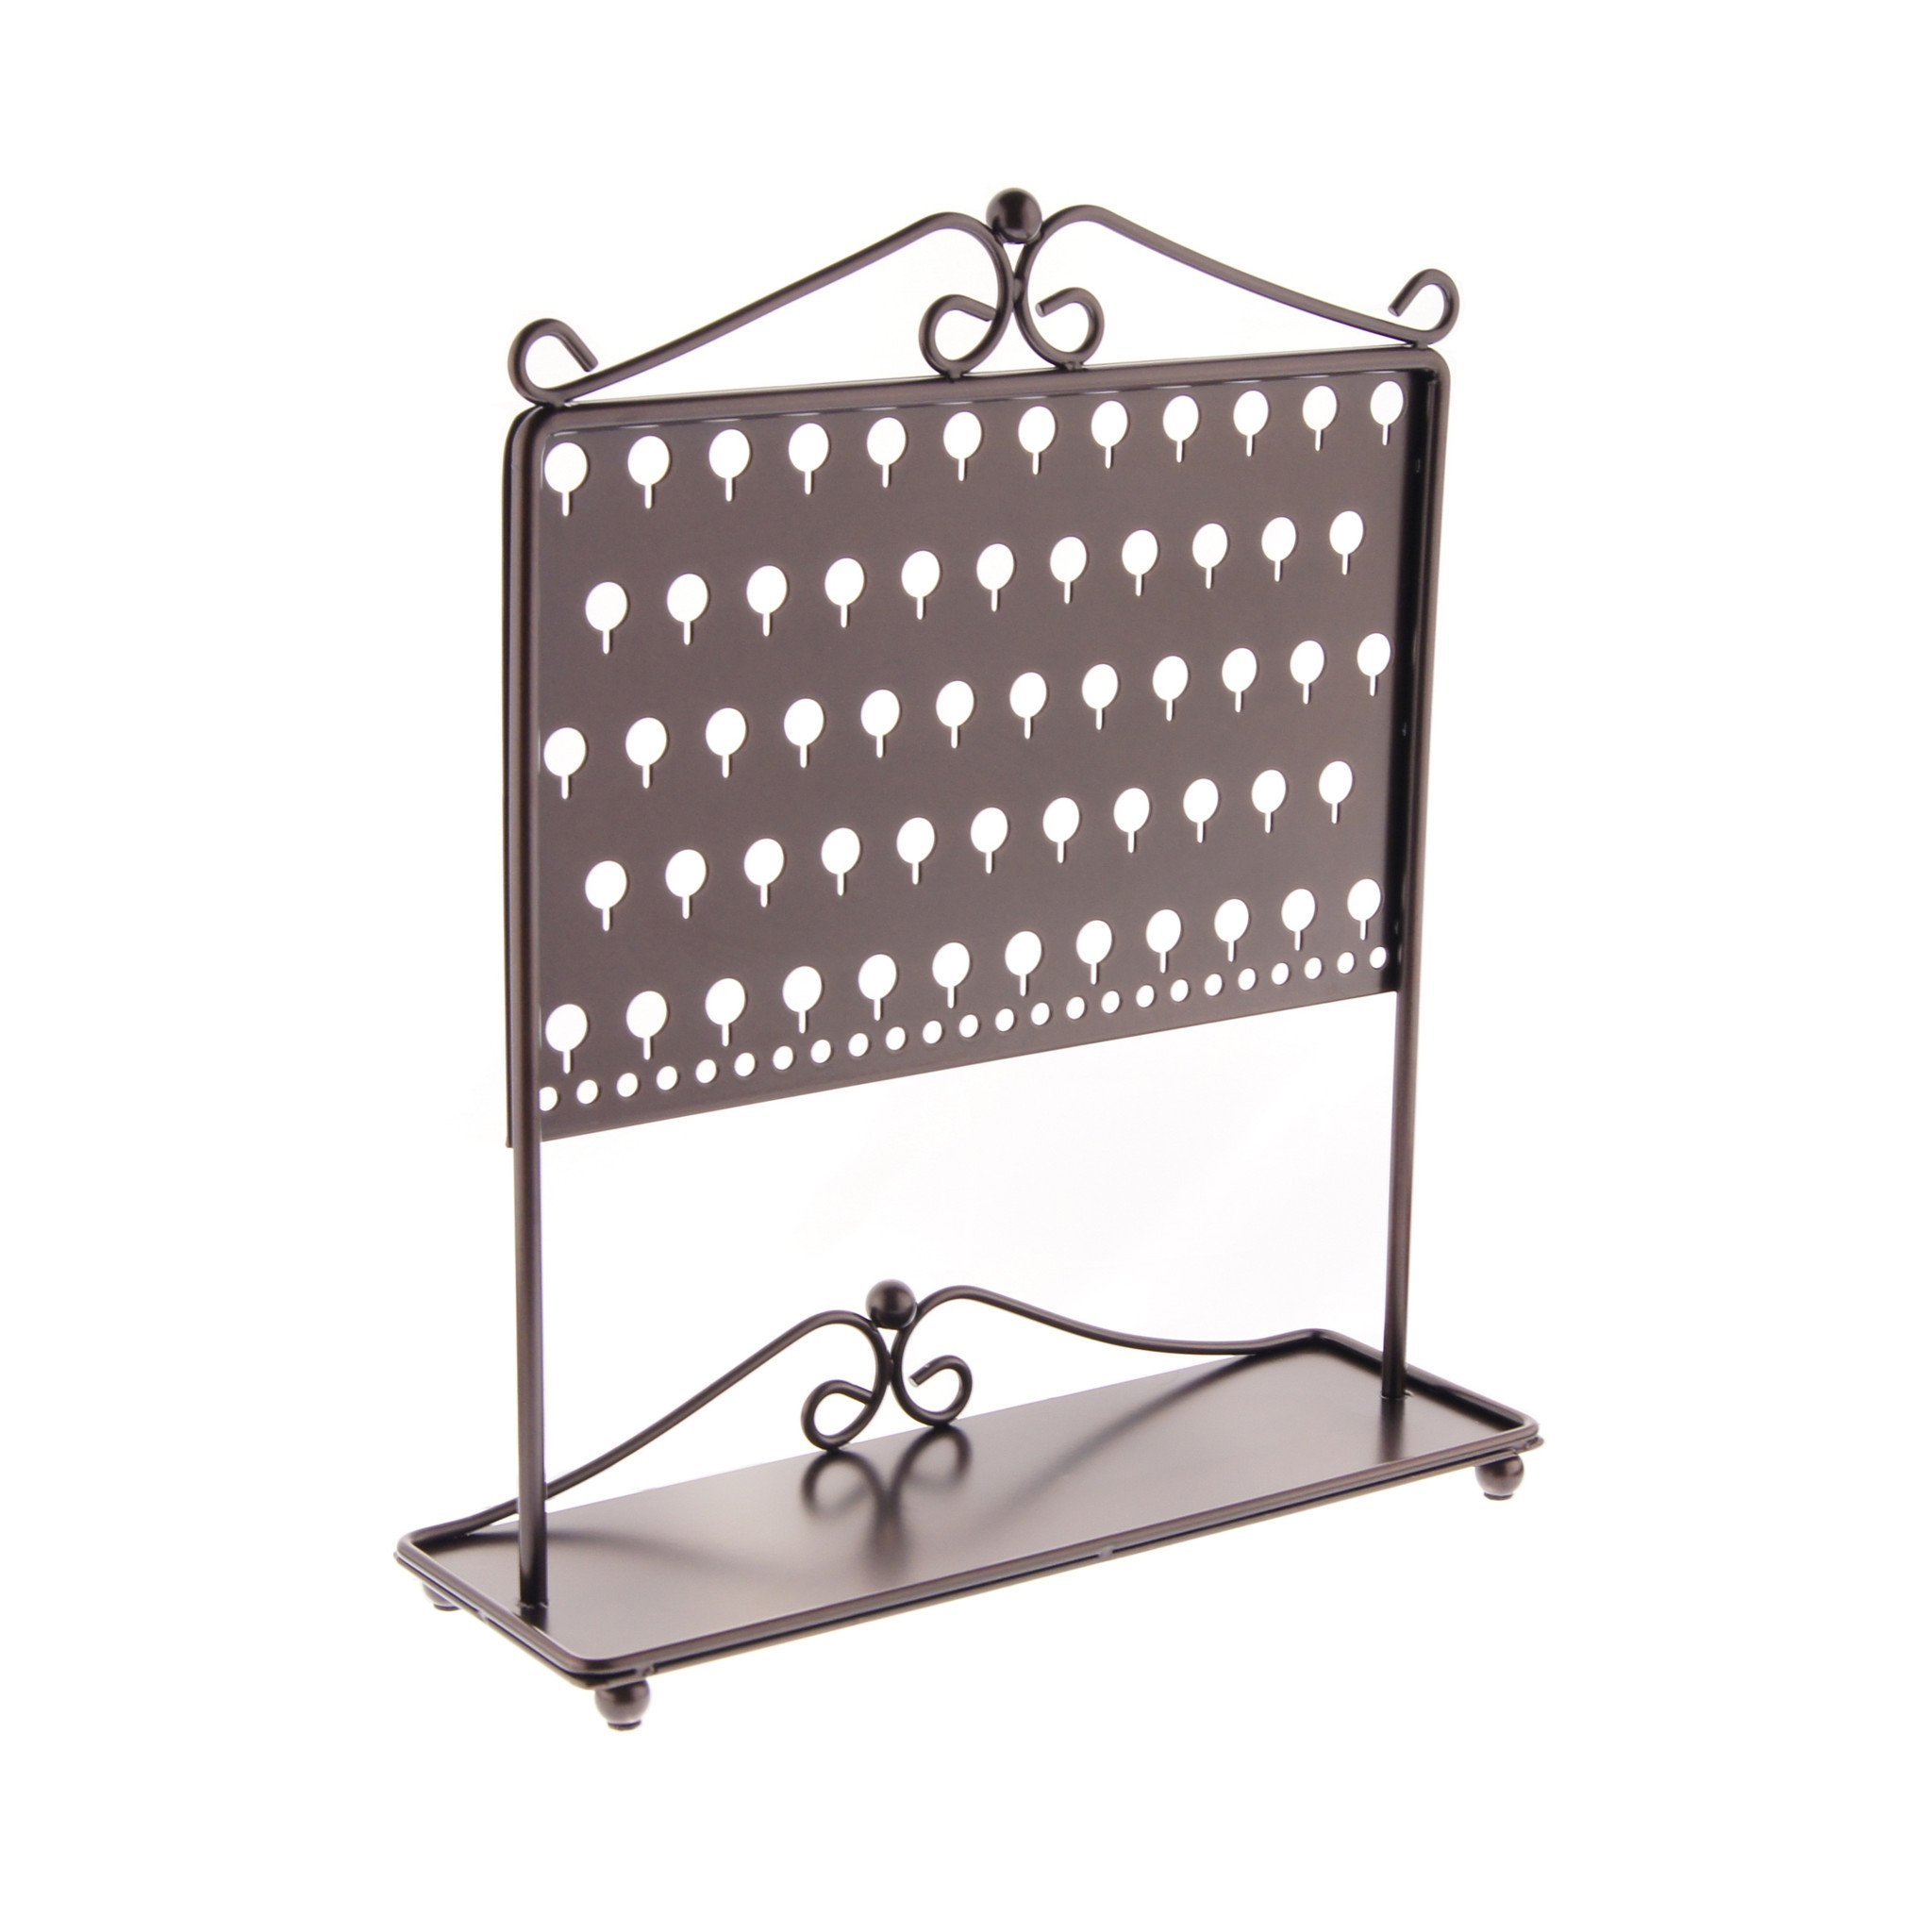 Earring Holder Organizer Stand Jewelry Organizer Hanging Earring Tree Storage Display Rack, Ginger Rubbed Bronze by Angelynn's Jewelry Organizers (Image #3)